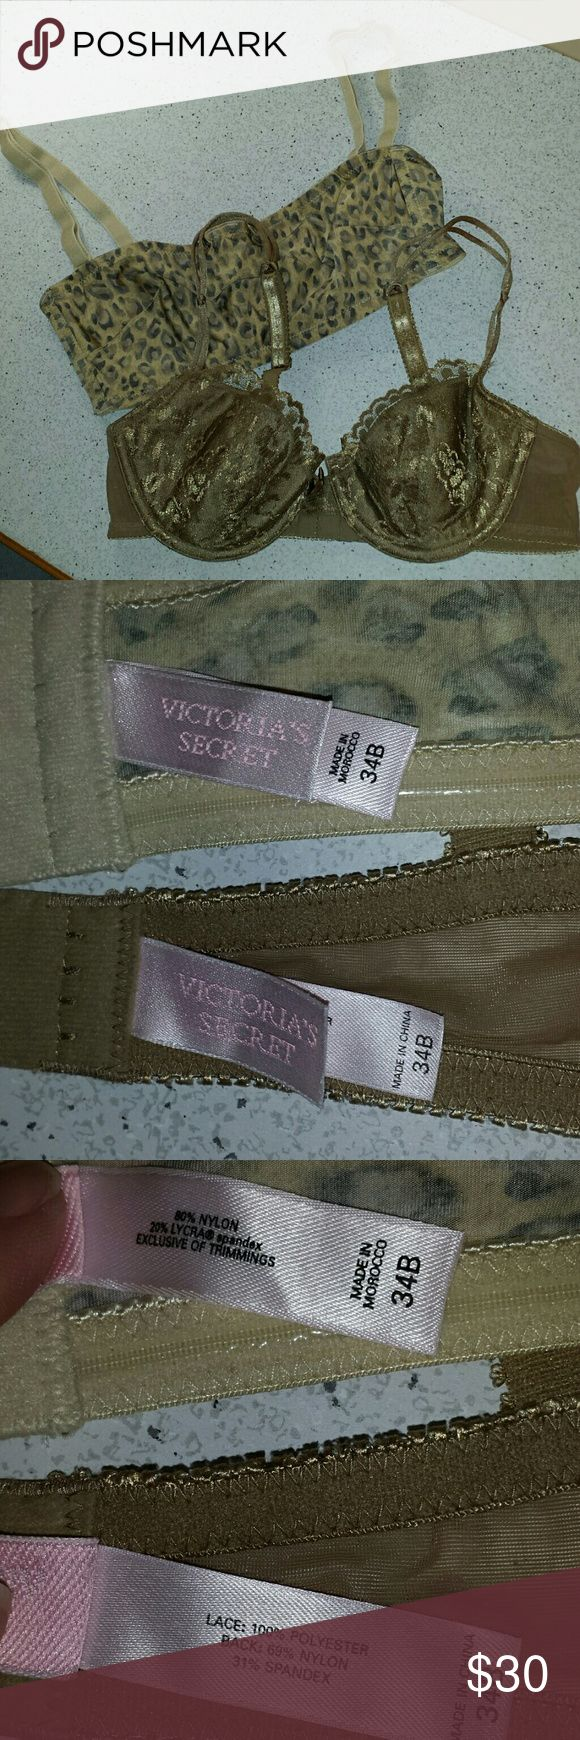 2 Victoria's Secret sz 34B EUC underwire bras Excellent condition!  Beigey brown bra is lightly lined, adjustable straps, pretty lace and strap detail. Back has 2 hooks. Animal print is a bandeau with removable adjustable straps, and it has the elastic strips top and bottom to help keep it in place. Unlined underwire, back has 3 hooks Victoria's Secret Intimates & Sleepwear Bras